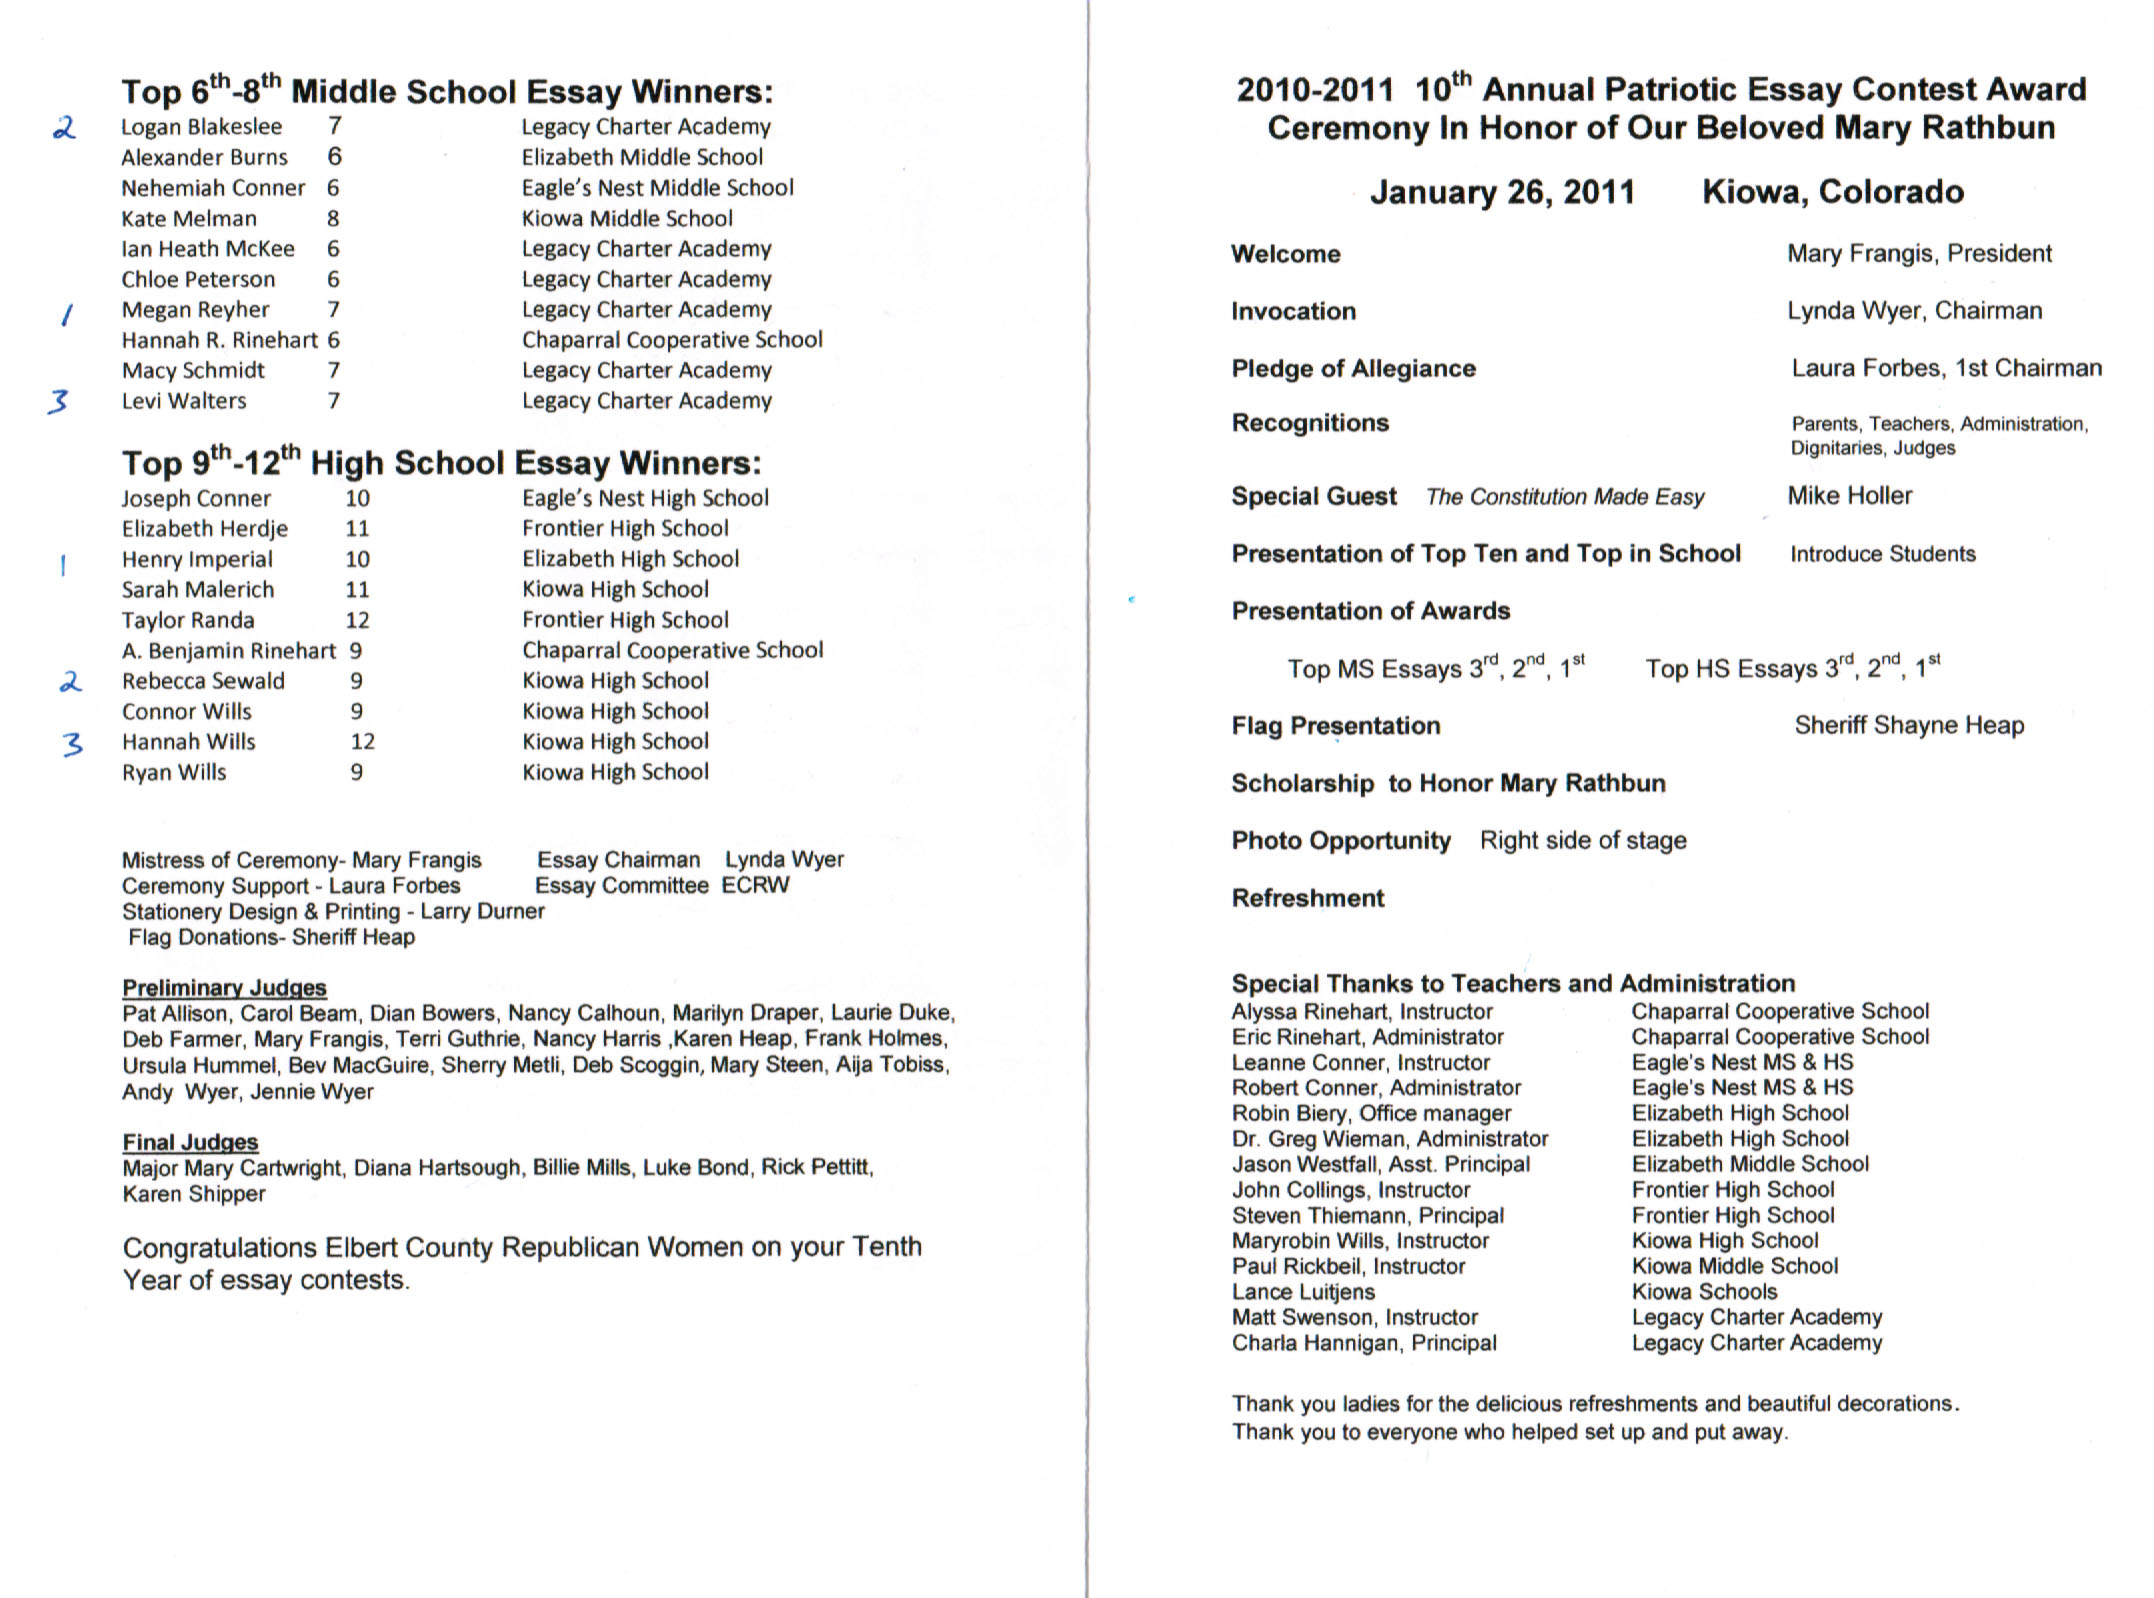 2011 ECRW Essay Contest Program